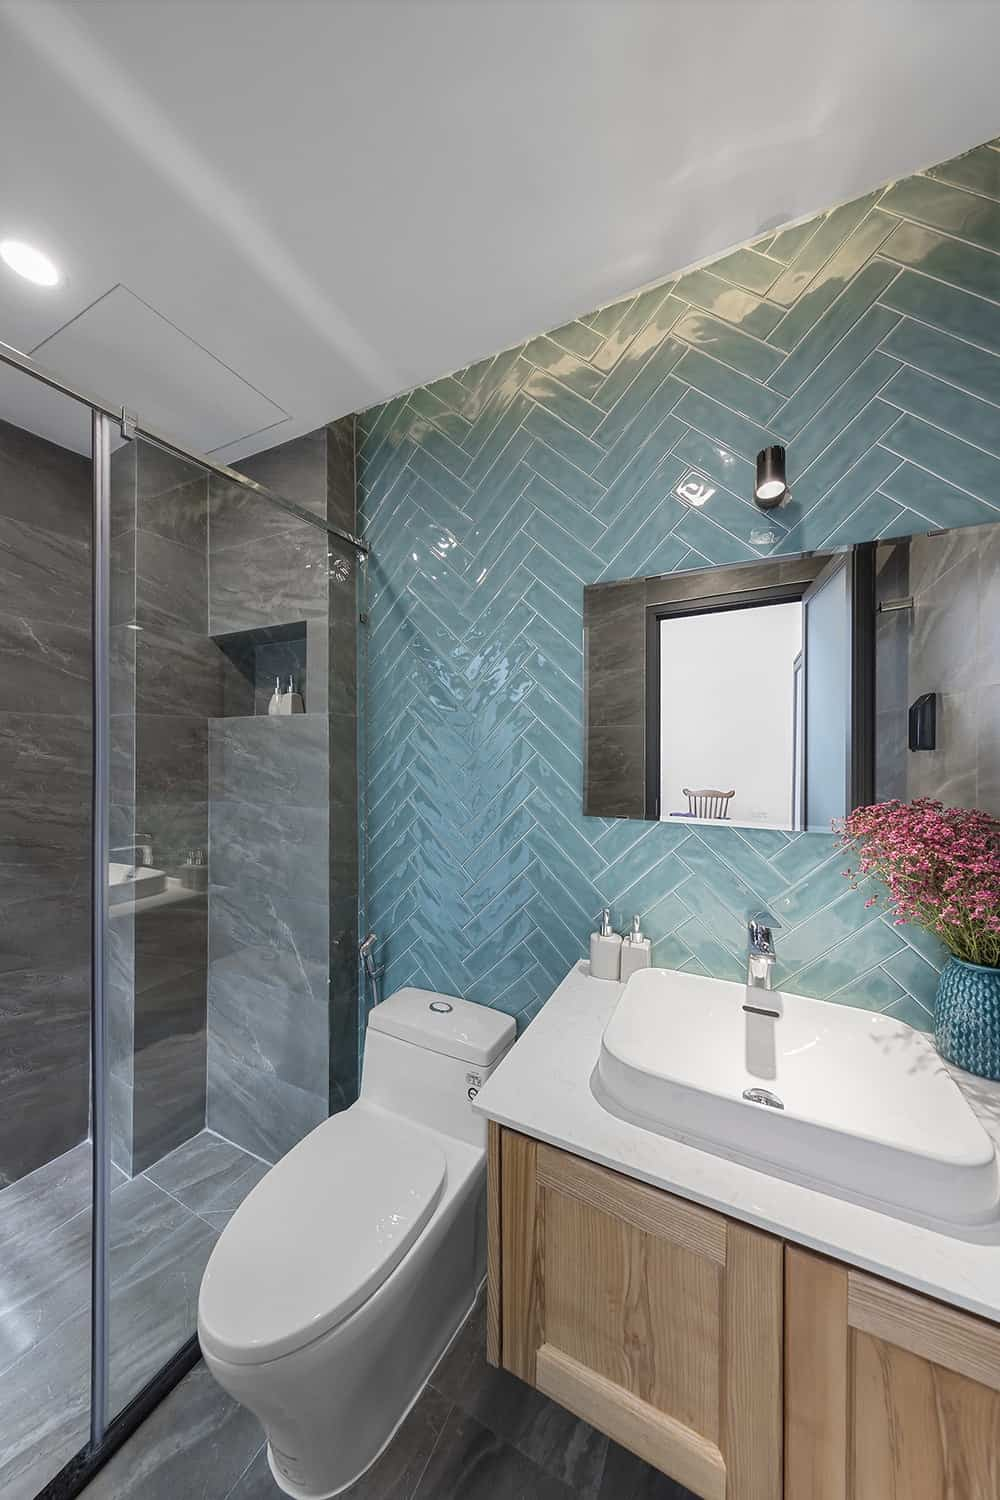 The bathroom has a light blue herringbone wall that contrasts the white porcelain toilet and sink. On the far side is the glass-enclosed shower area with dark gray tones,